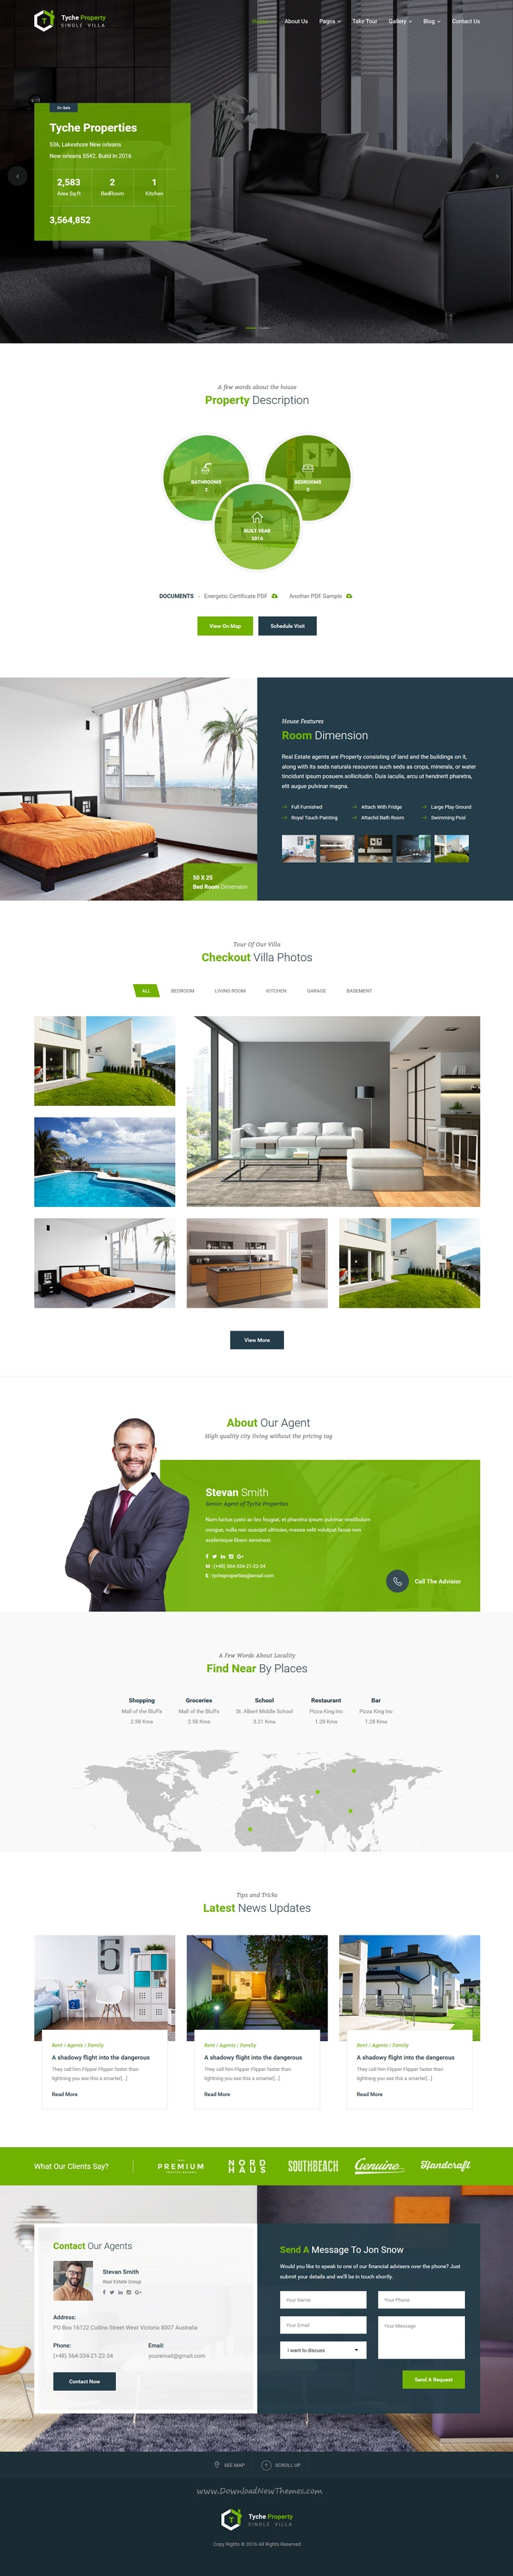 Tyche Properties - Single Property Real Estate HTML Template ...